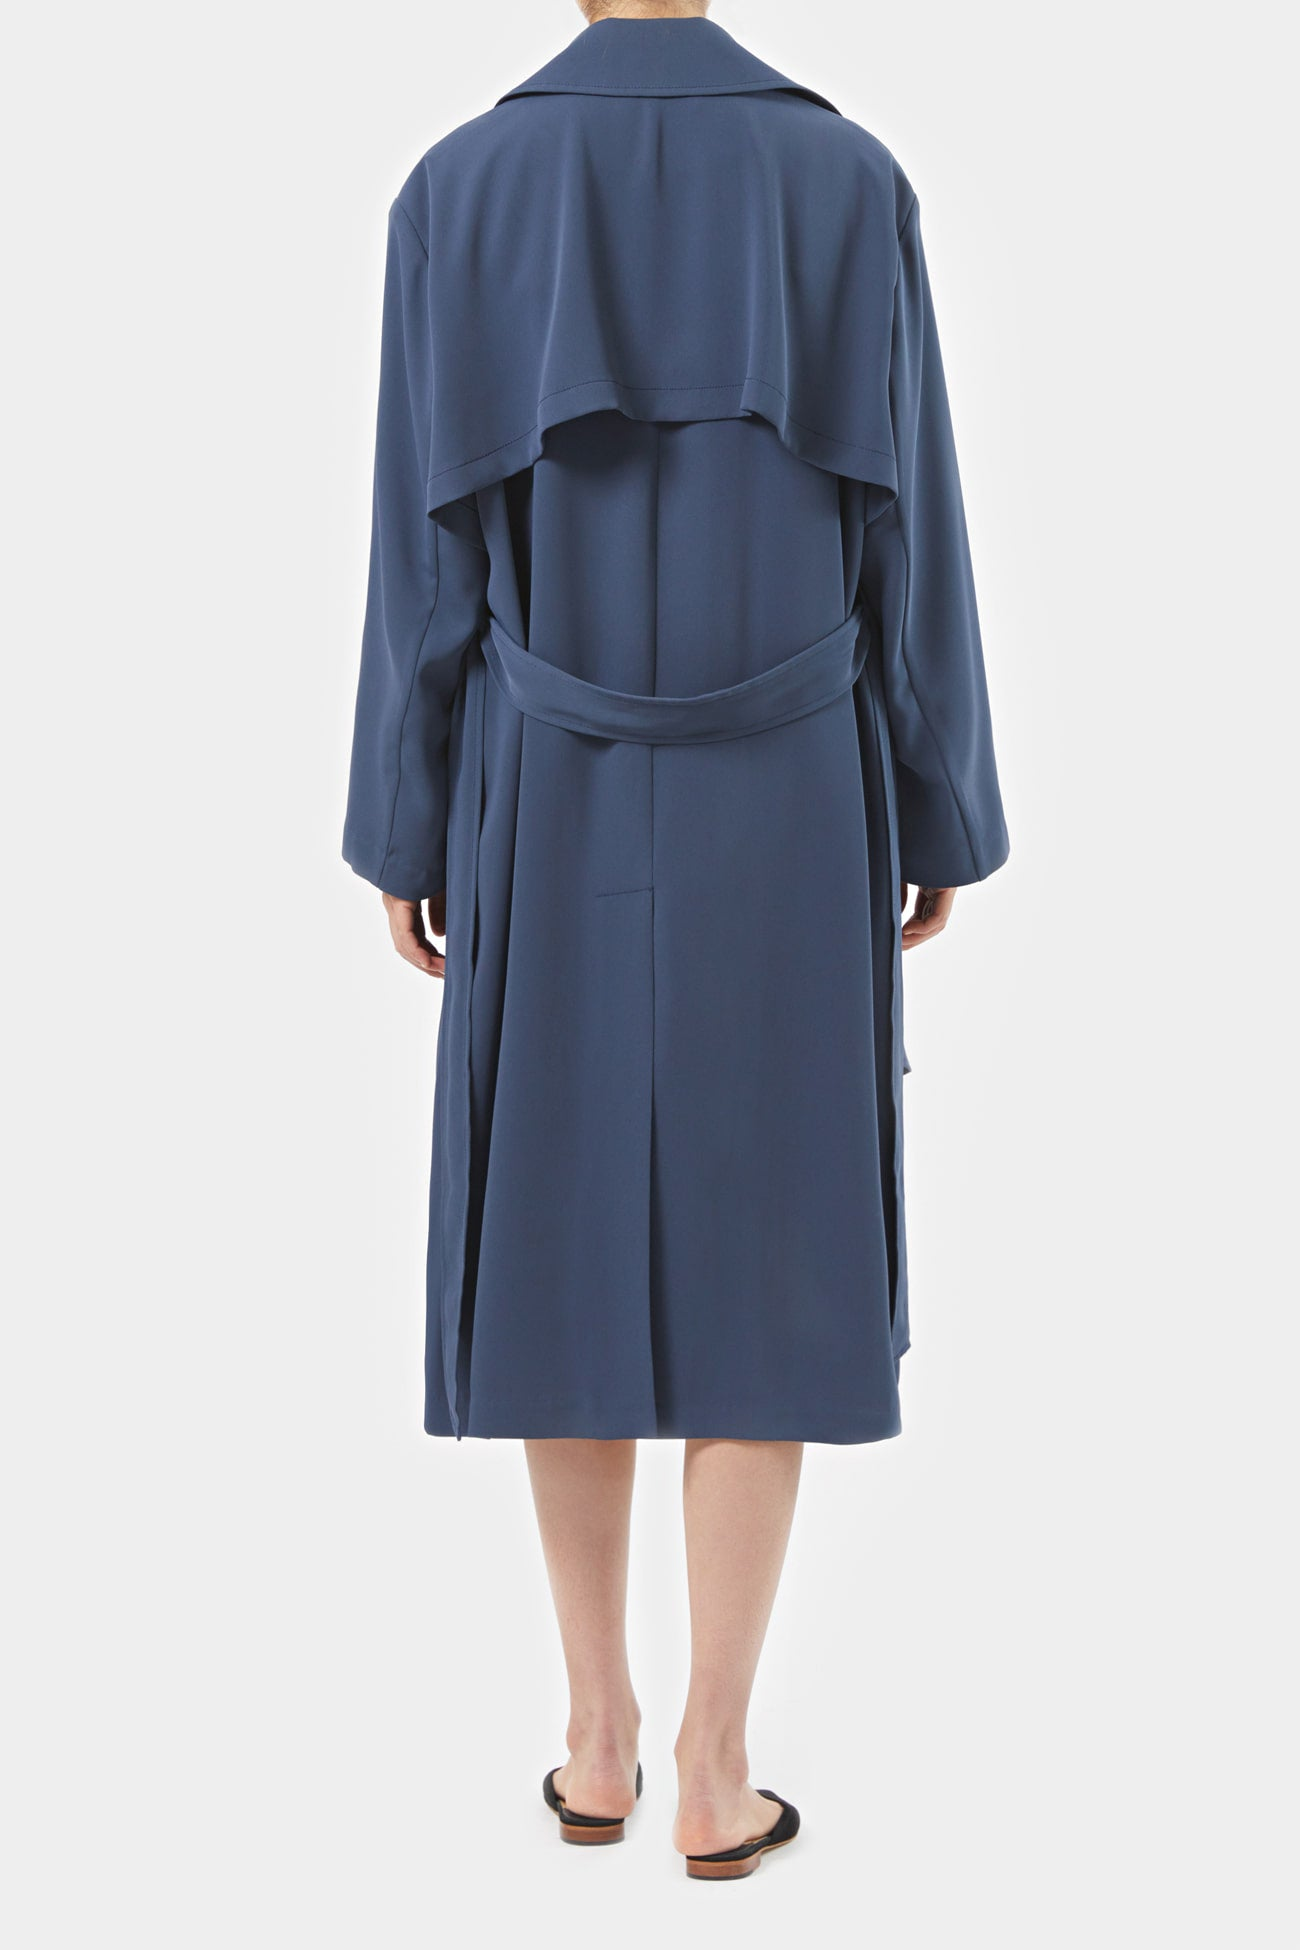 STONE BLUE LEIF ASYMMETRICAL TRENCH